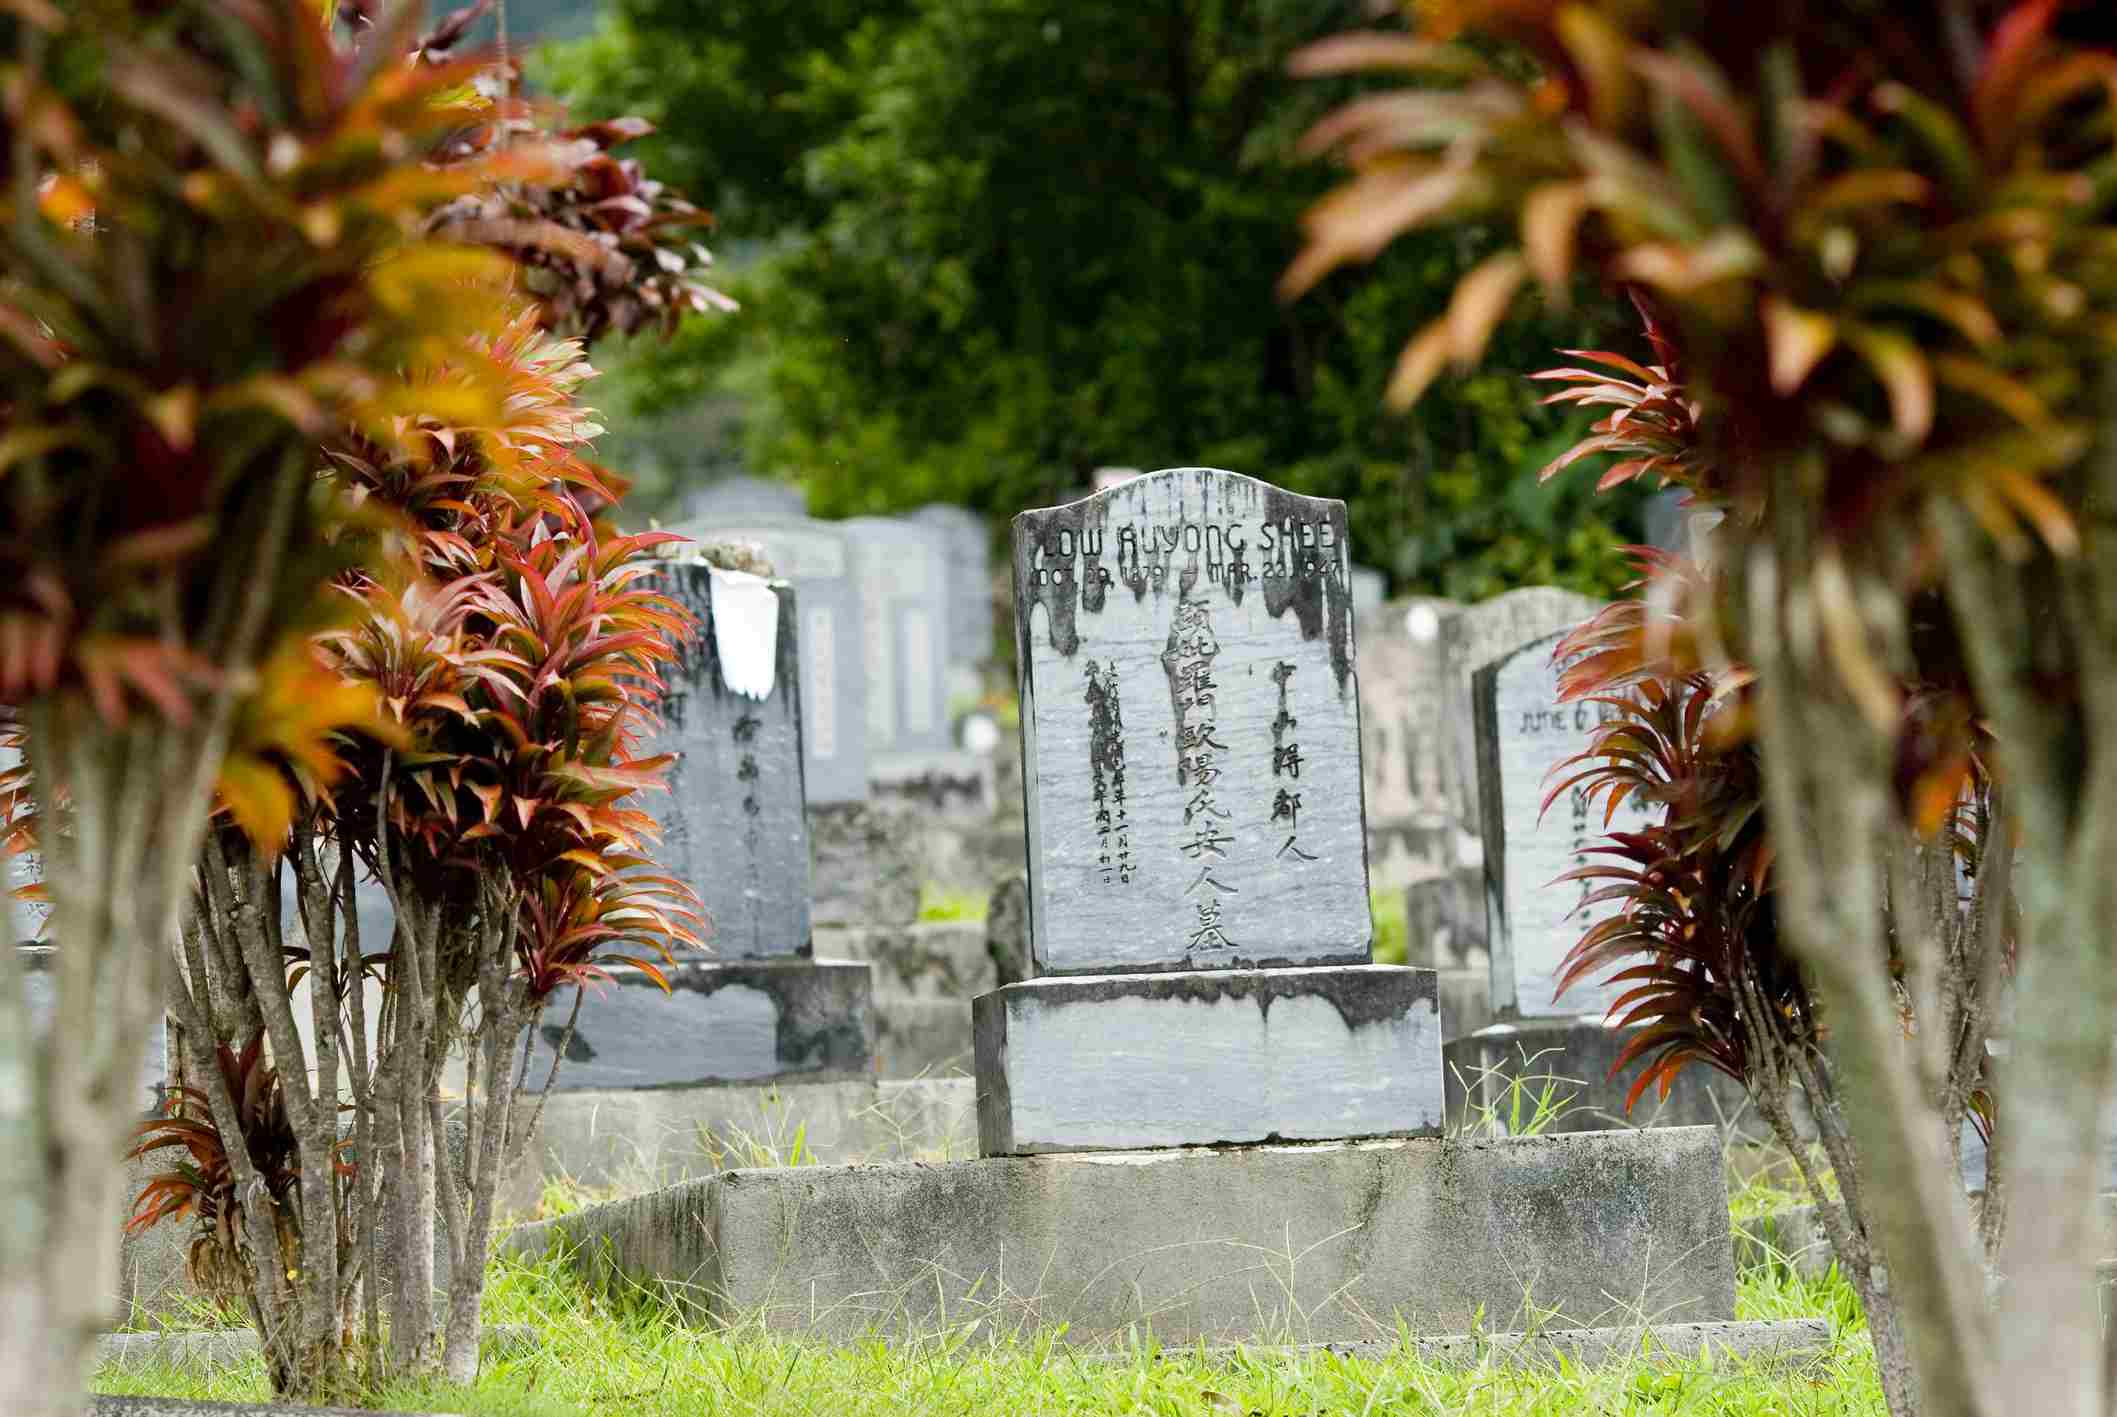 Hawaii, Oahu, Manoa Valley, Chinese Cemetery at Woodlawn, well-known for being haunted.